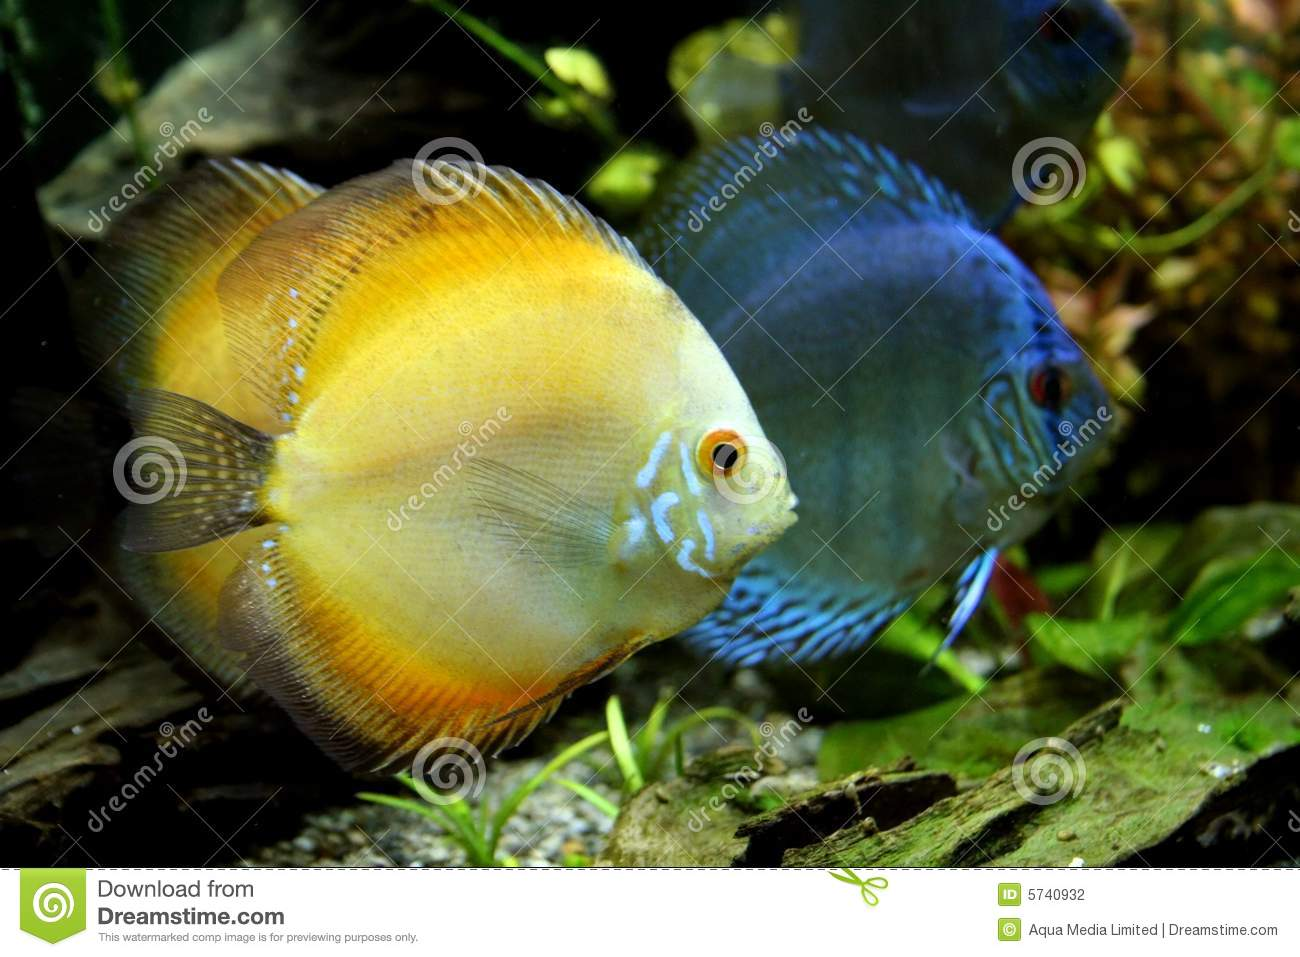 Orange And Blue Discus Fish Stock Photography - Image: 5740932